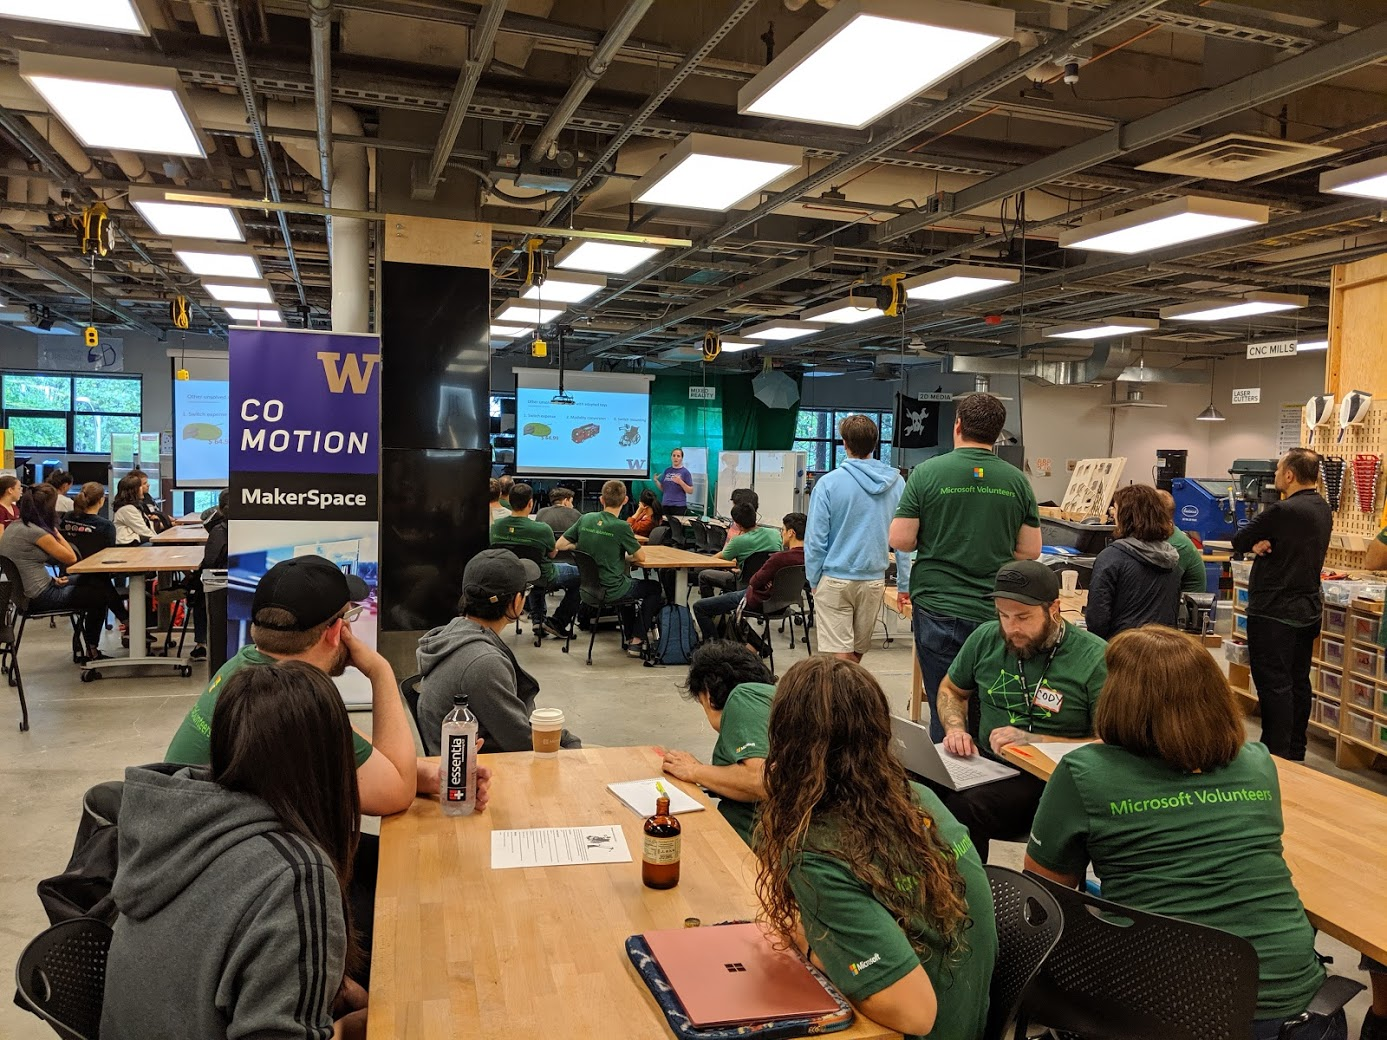 Younger woman in purple giving a presentation on two projection screens in a design space while a many others wearing green shirts look on